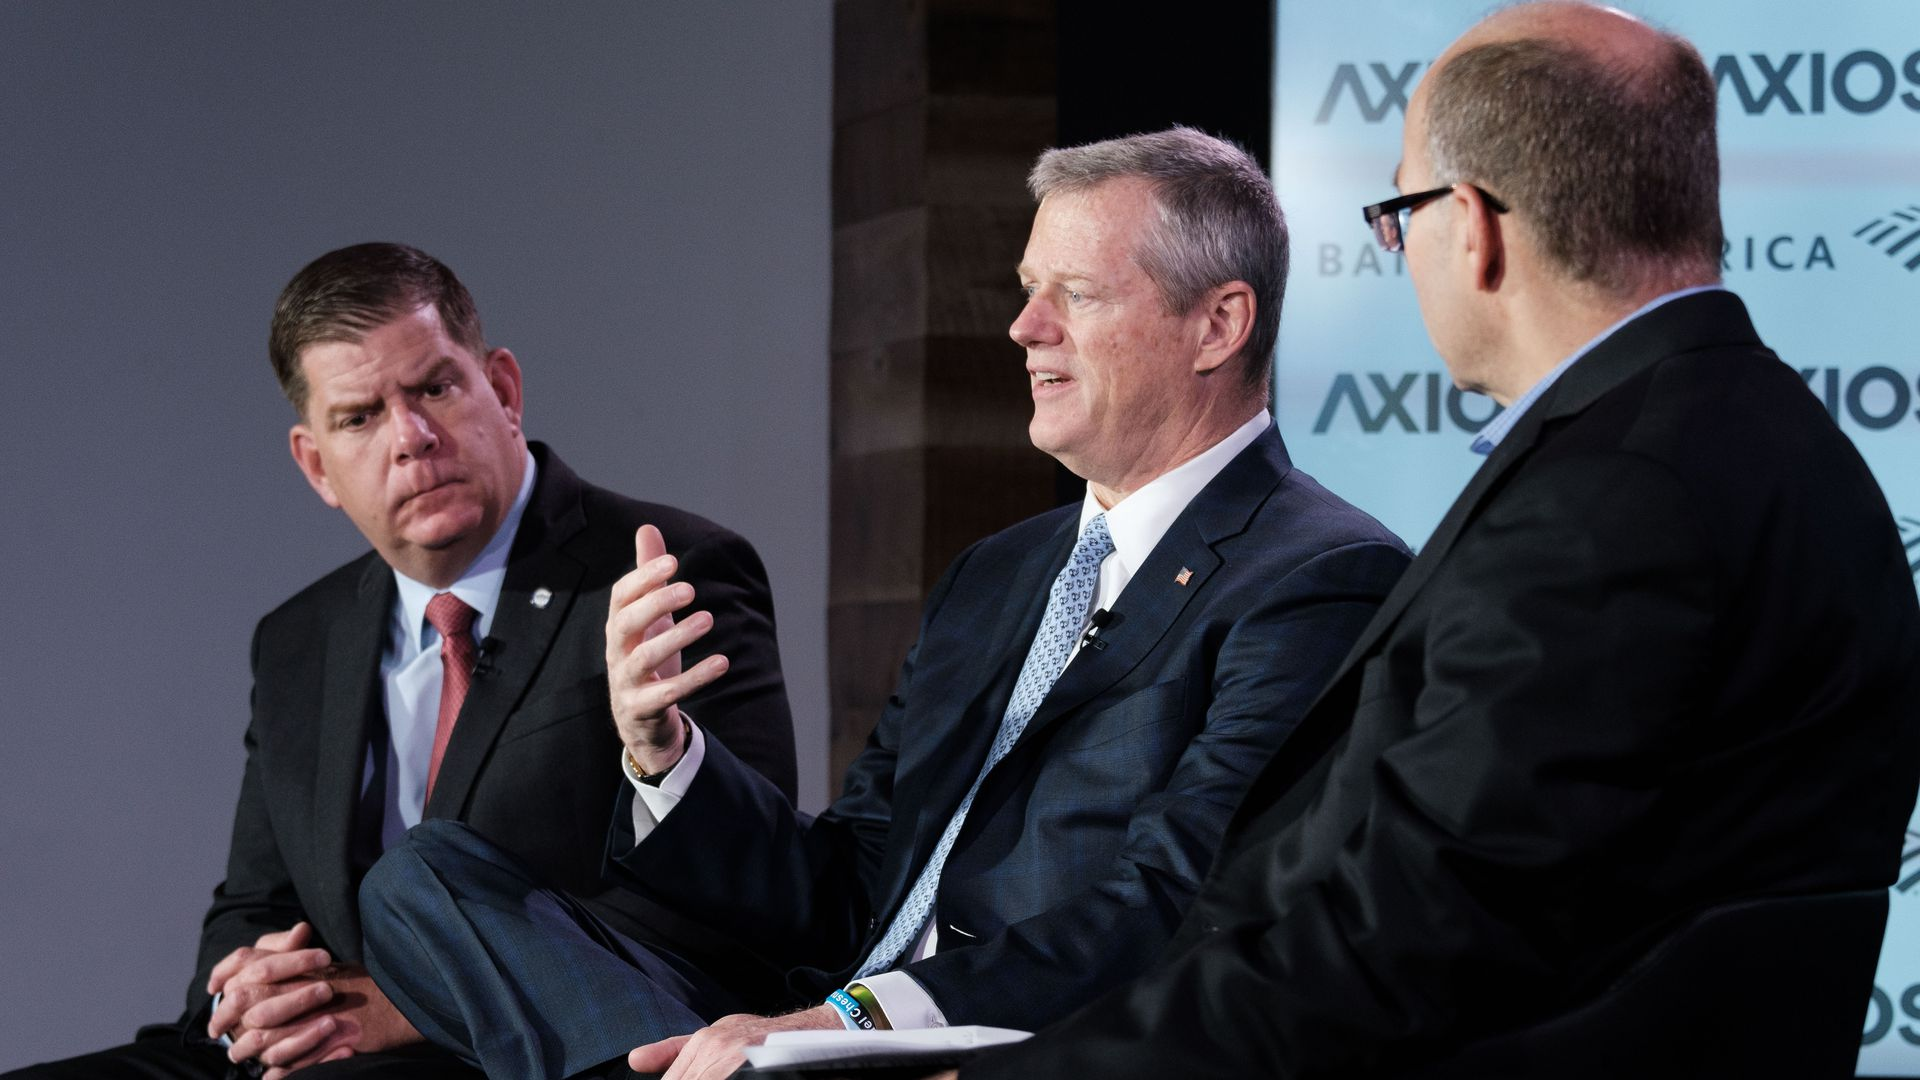 Three men sit on Axios stage for event.